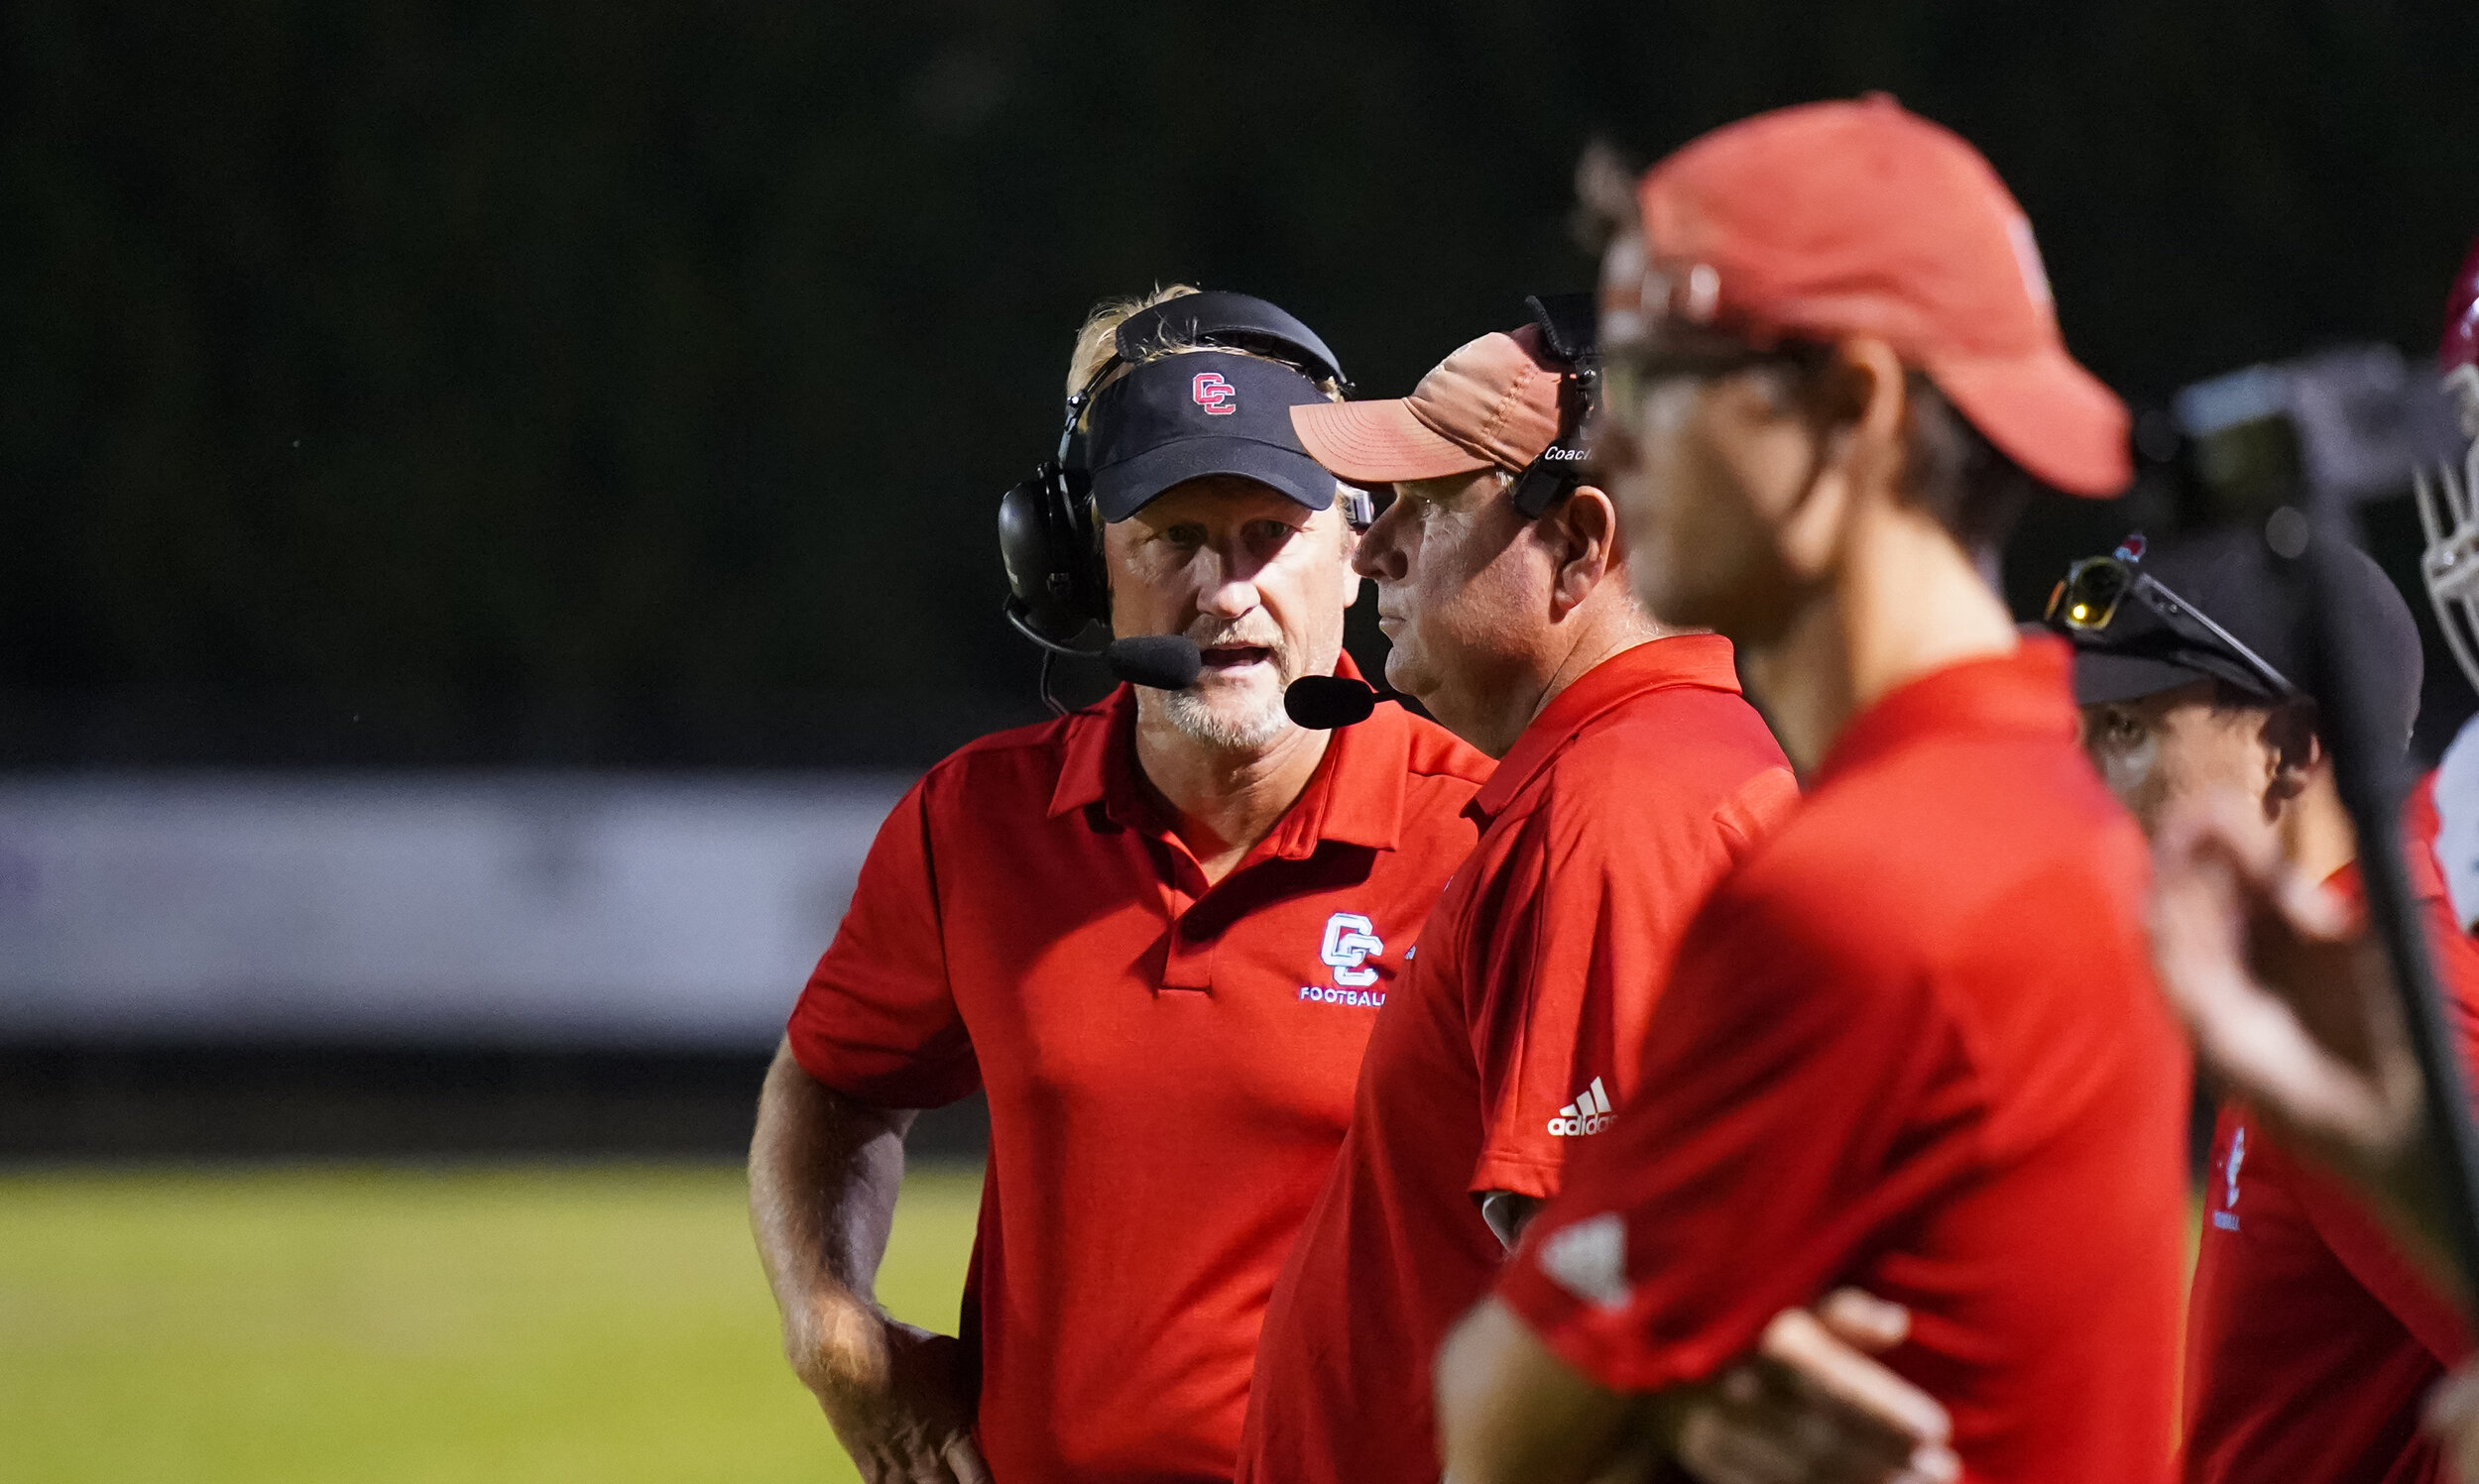 Charlotte Catholic Head Coach Mike Brodowicz